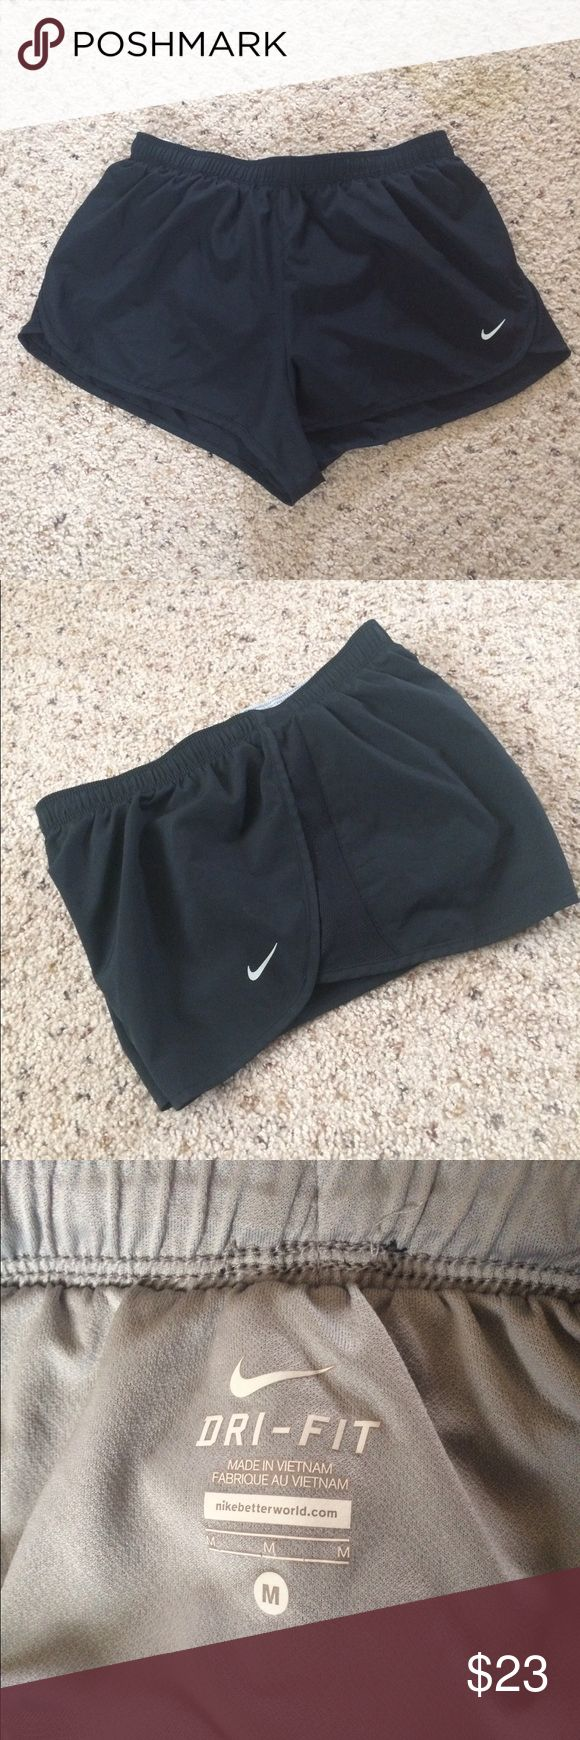 """Nike 2 Road Race Shorts Black Running M Elastic waistband with internal drawcord for a snug, comfortable fit Built-in briefs for support and comfort Vented side panels for enhanced range of motion and style Reflective details for enhanced visibility in low-light conditions  Size M: 2"""" inseam based on size medium Fabric: Body: Dri-FIT 100% polyester. Lining: Dri-FIT 100%  polyester. Machine wash Color: Black Nike style-color # 321647 Excellent condition. No rips stains or tears. Comes from a…"""